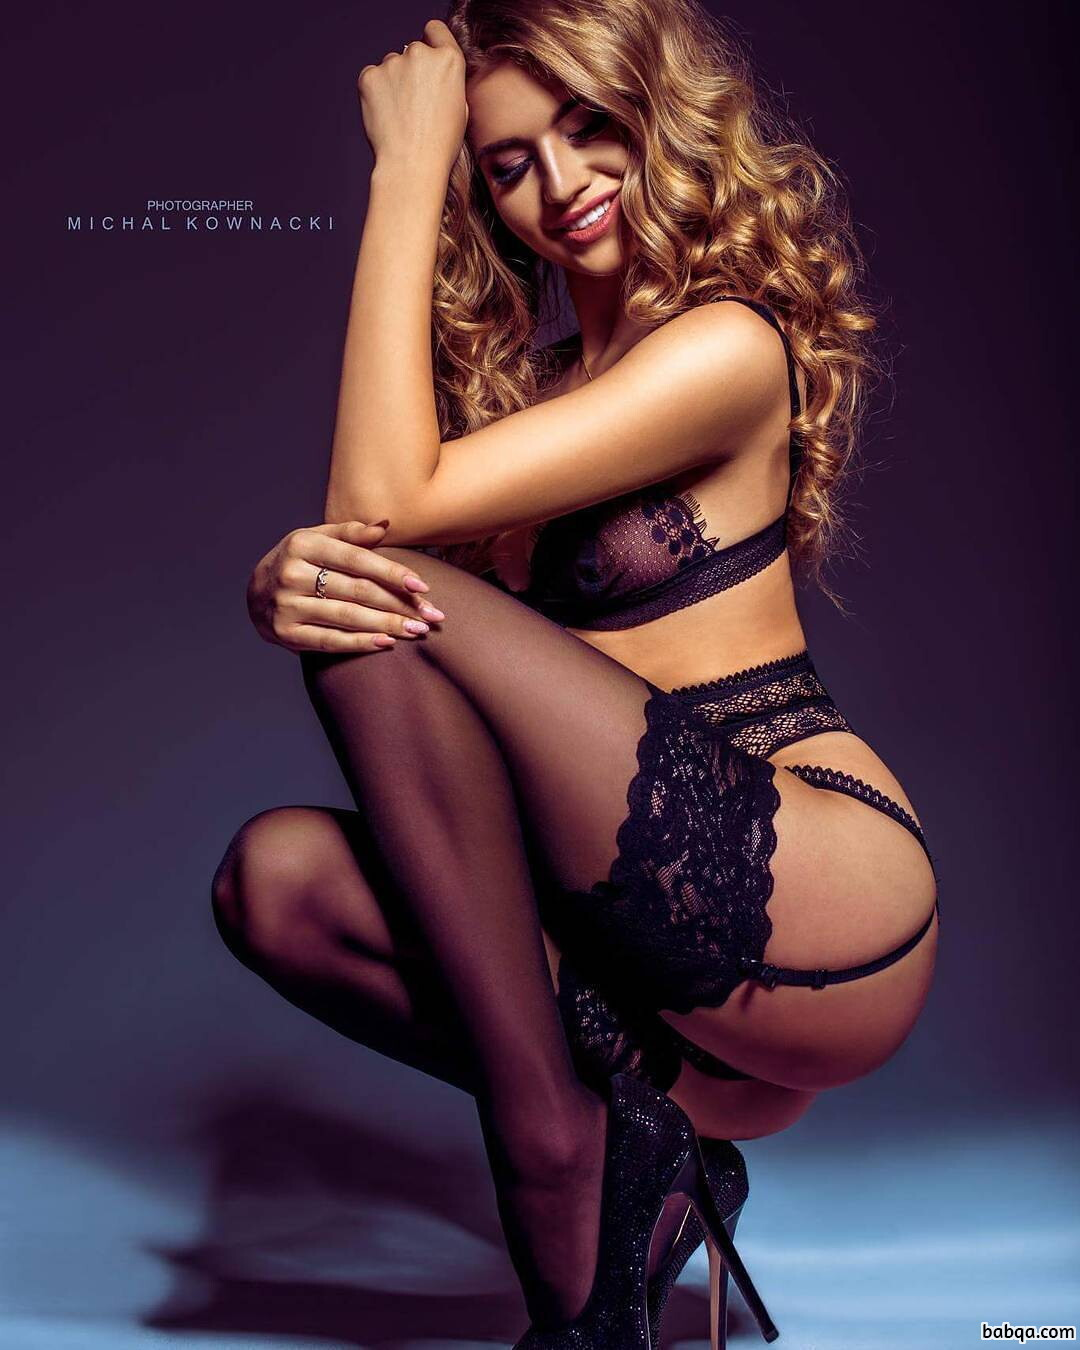 sexy lingerie naked women and kinky latex outfits